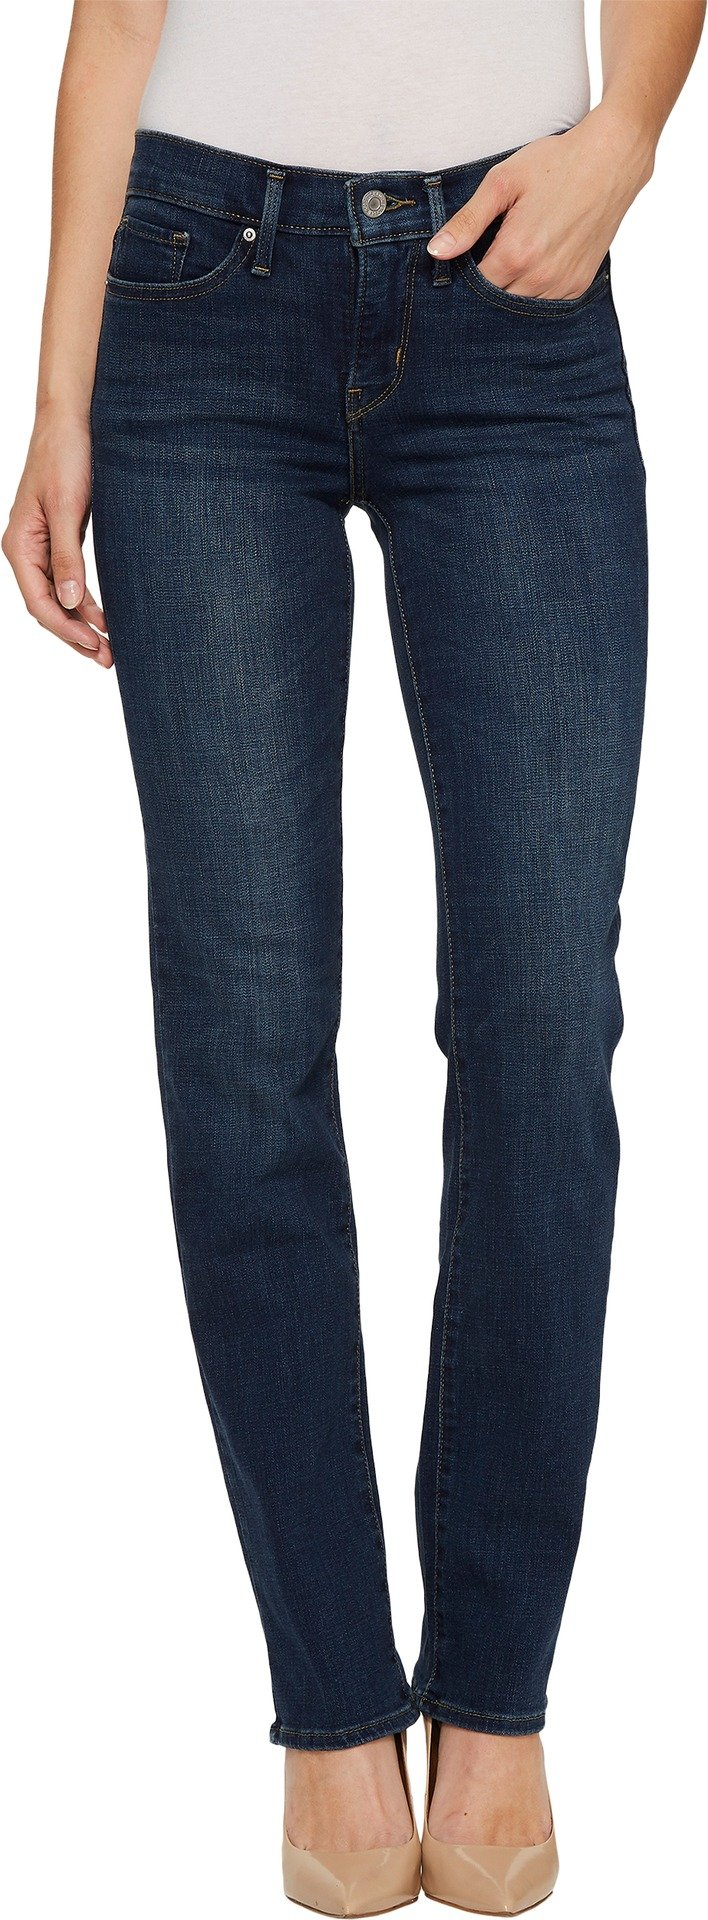 Levi's Women's 314 Shaping Straight Jean,Heart of Glass,33 x 32